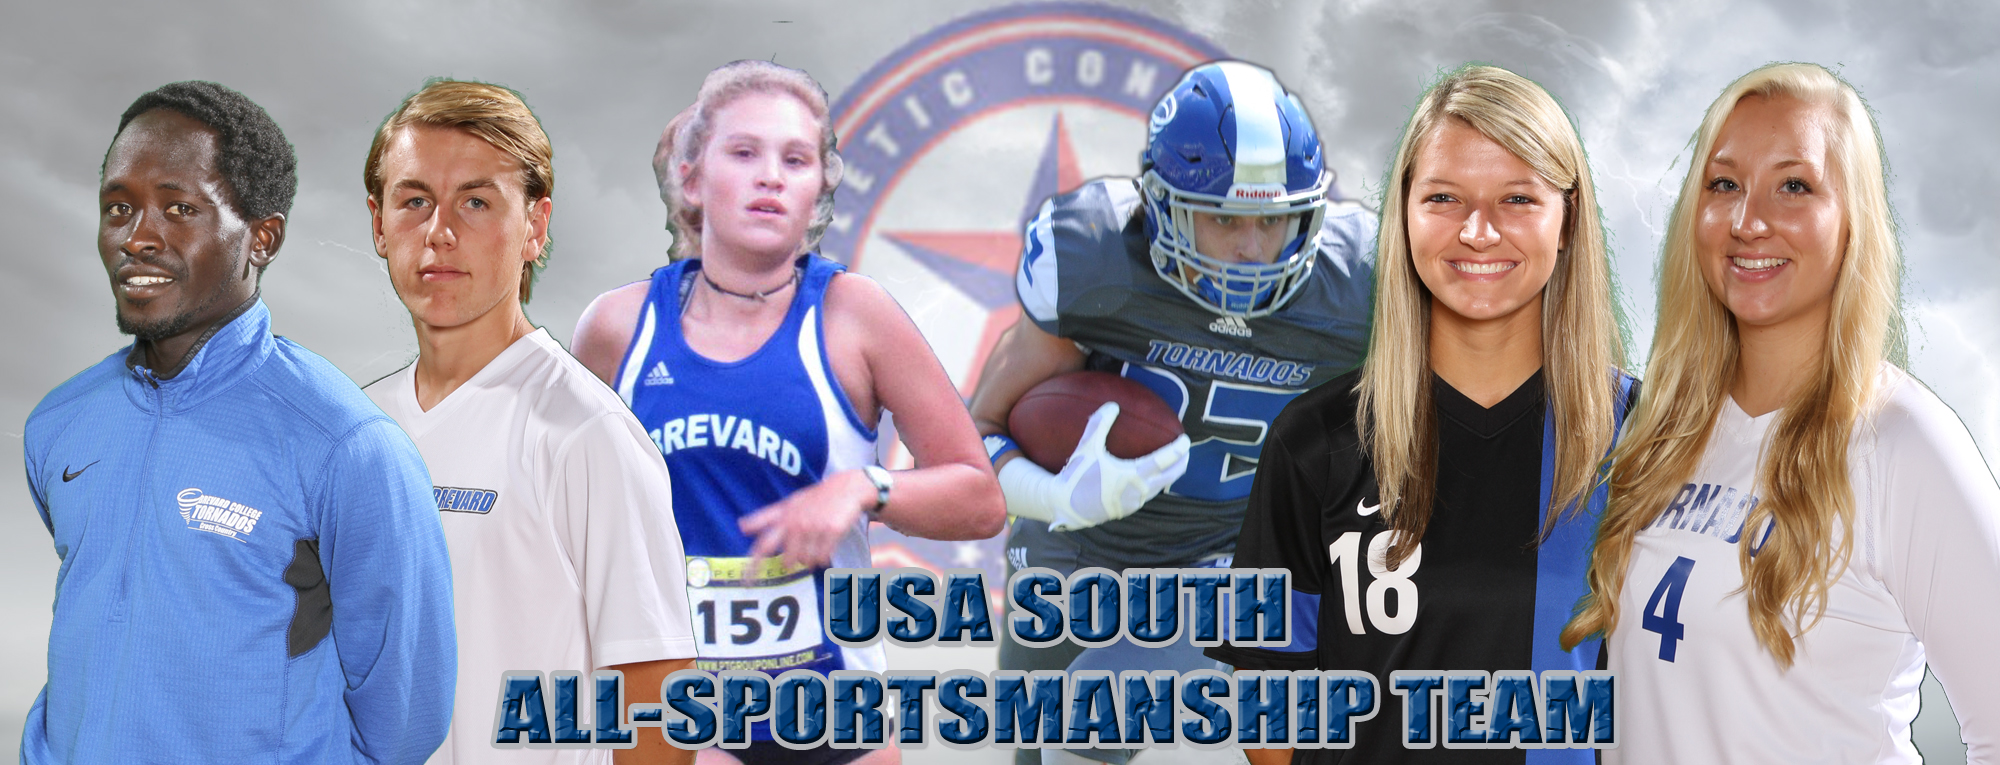 Six Tornados Receive All-Sportsmanship Accolades from USA South